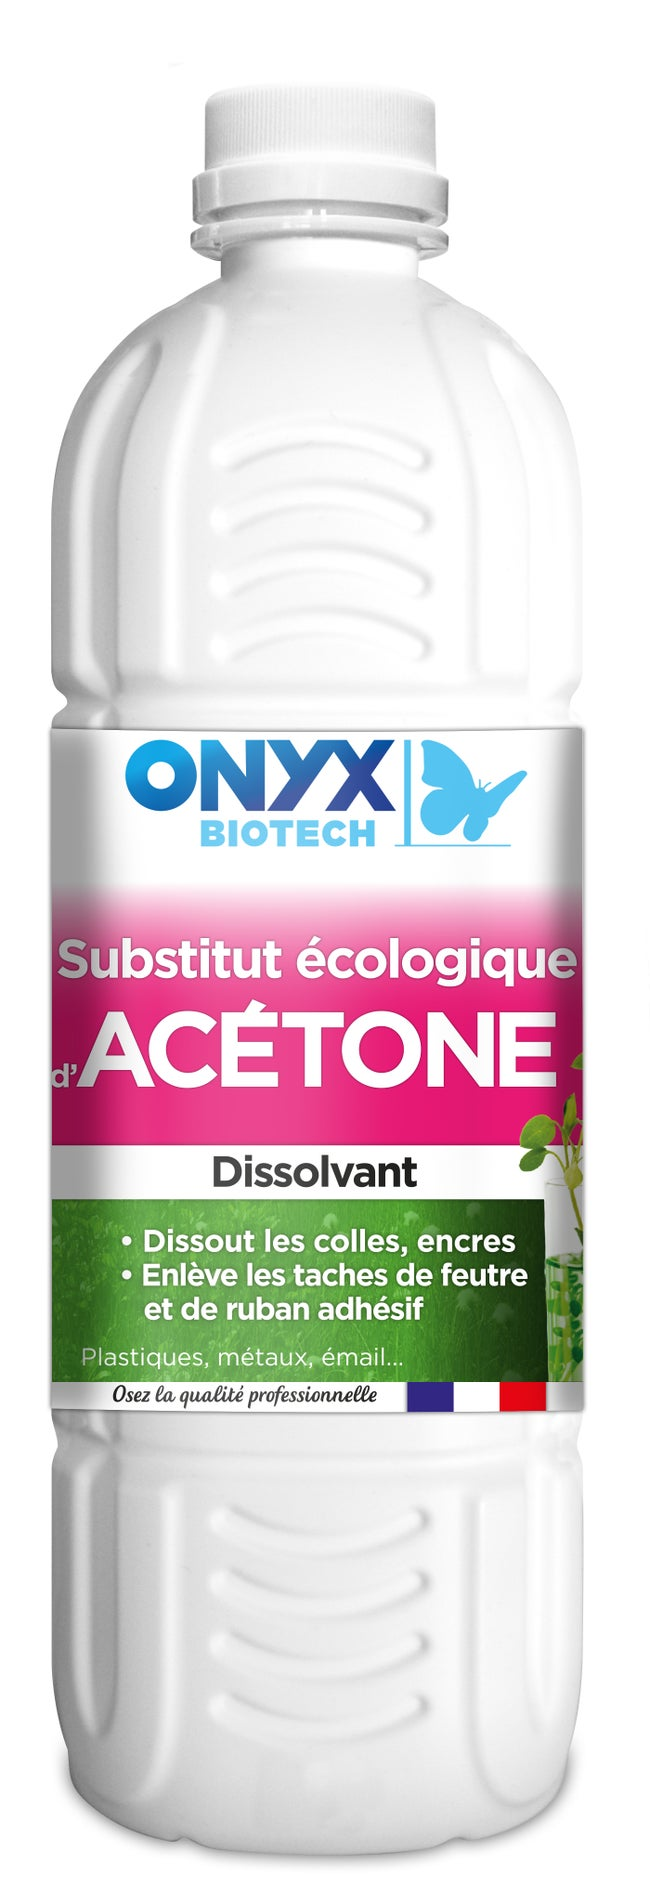 Colle Thermofusible Leroy Merlin substitut d'acétone ecologique onyx dissolvant, 1 l